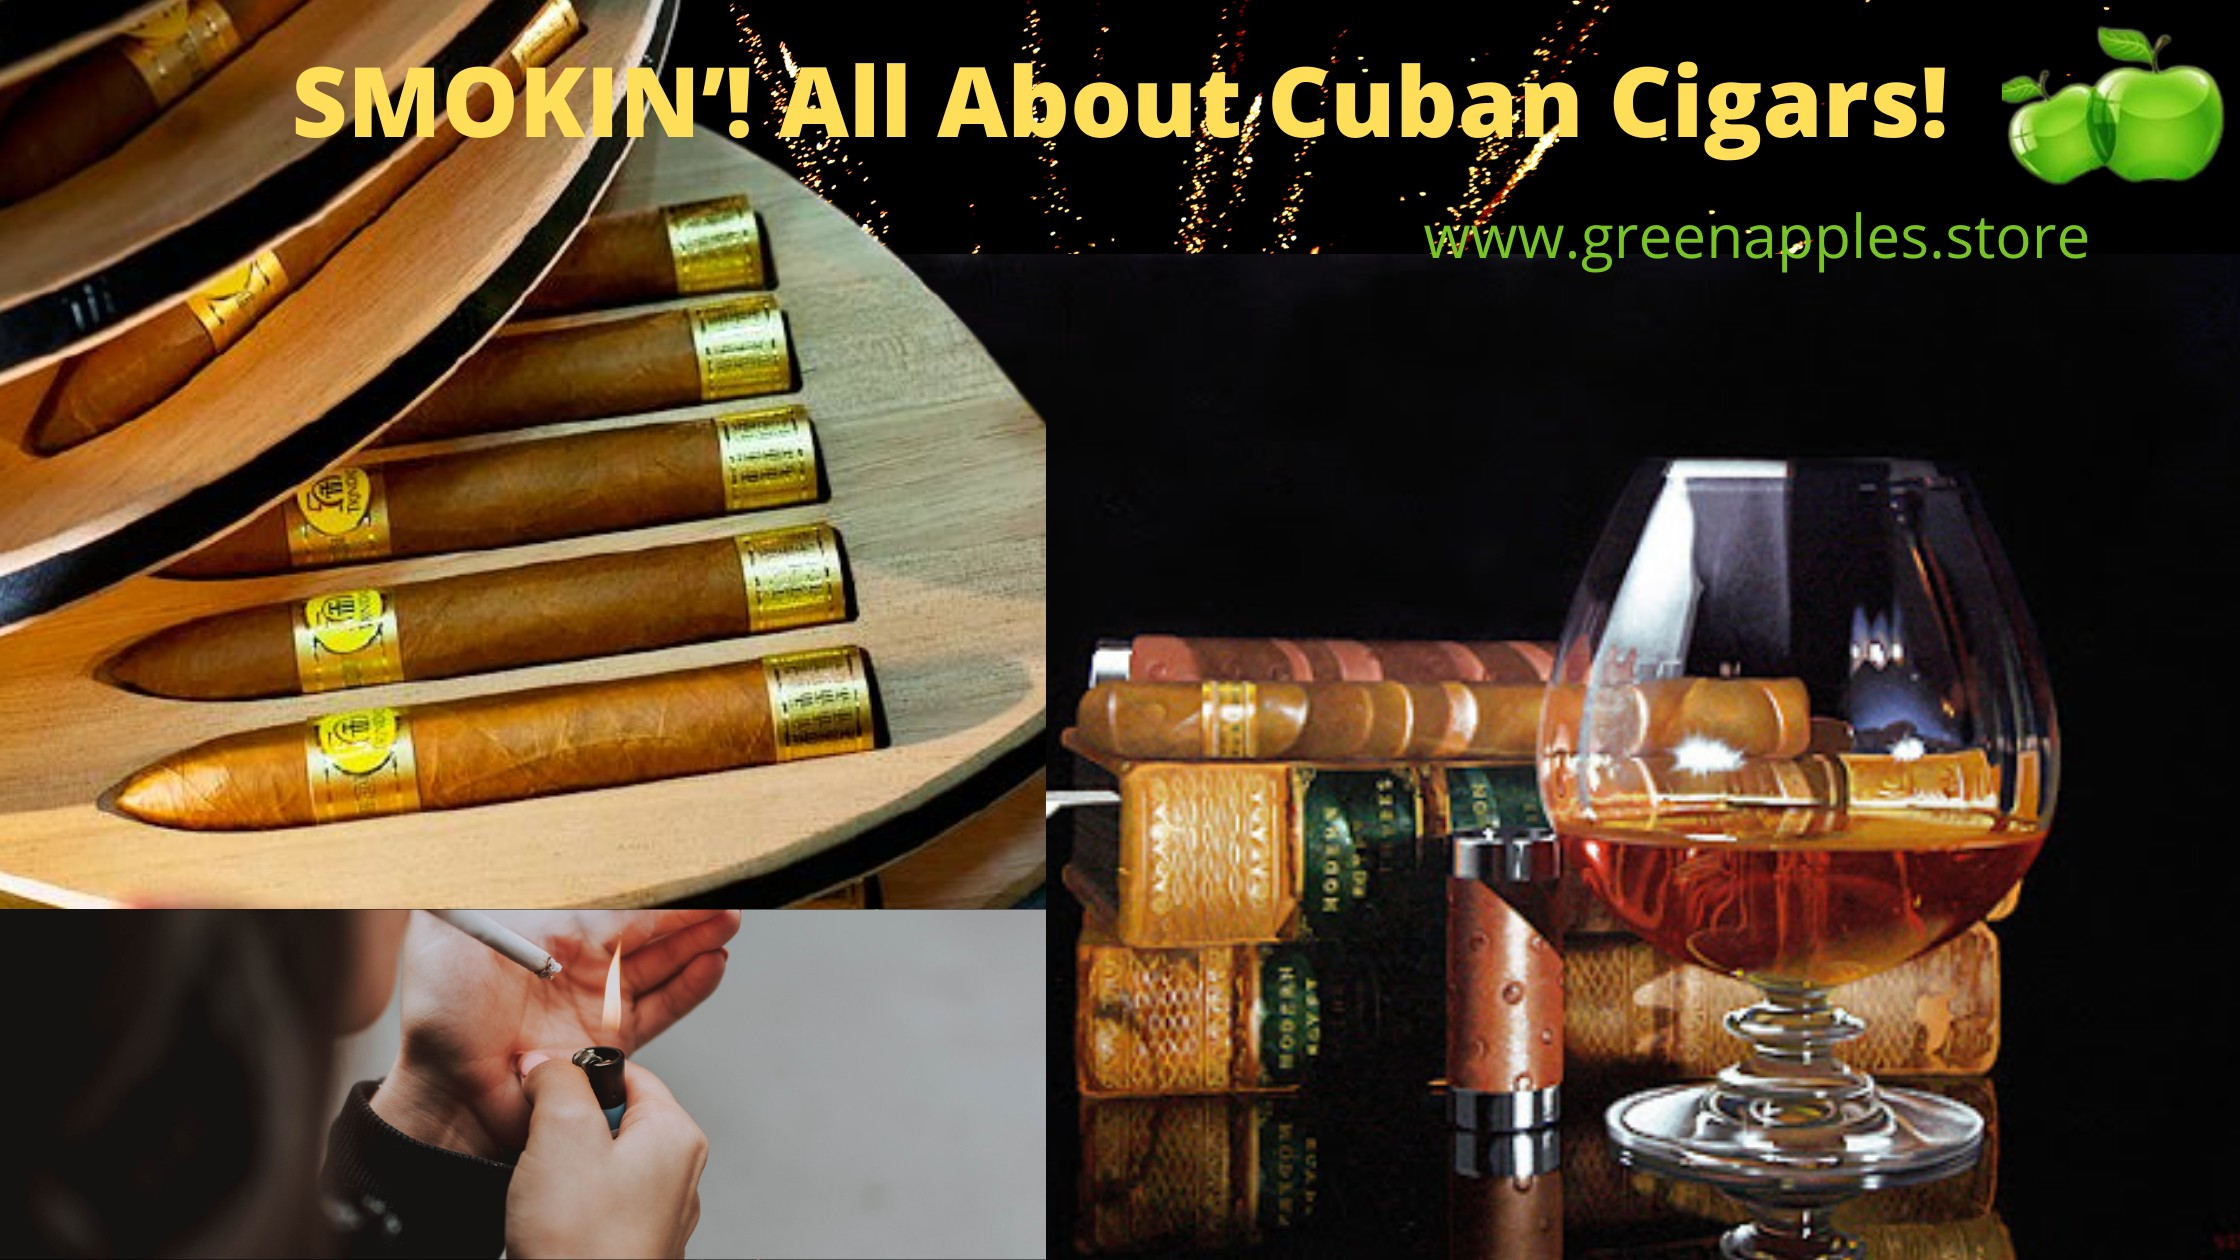 All About Cuban Cigars